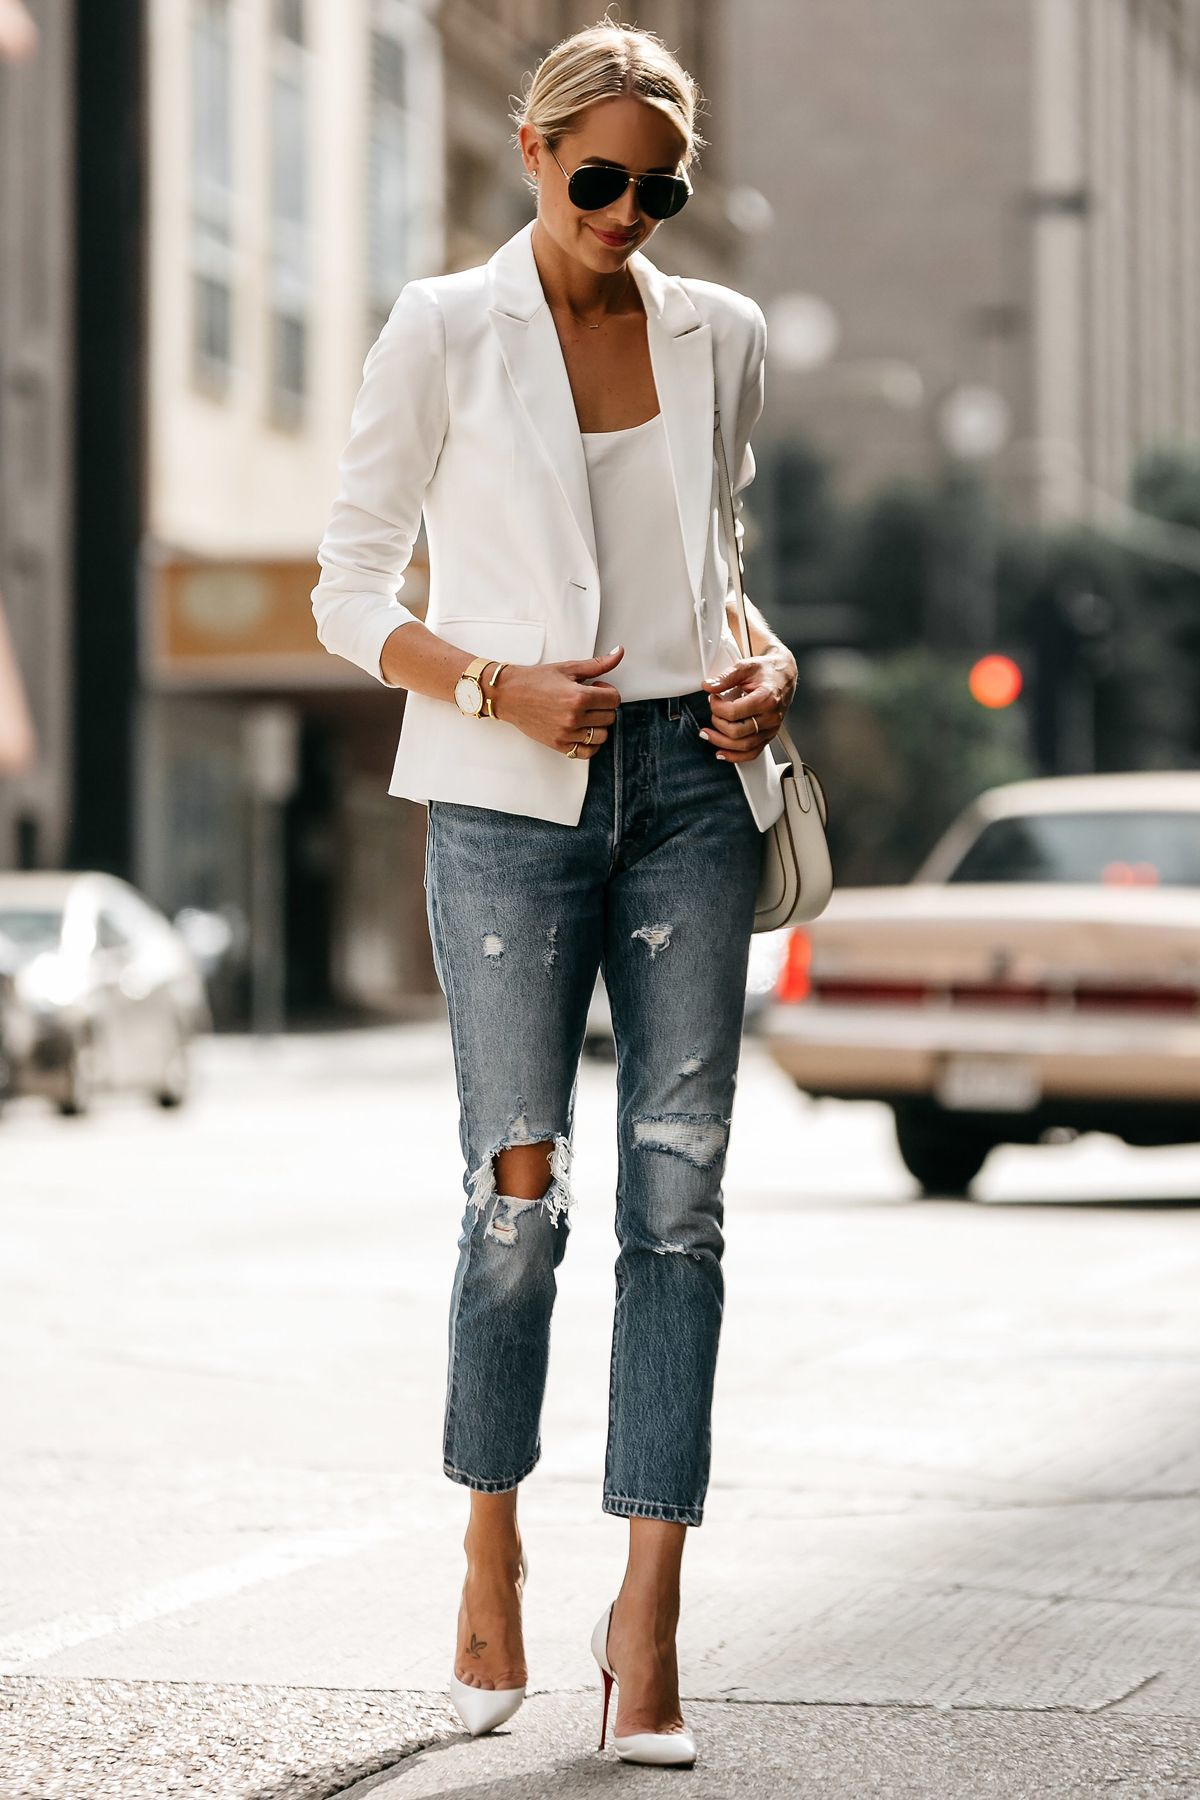 White Blazer And Blue Jeans Outfit